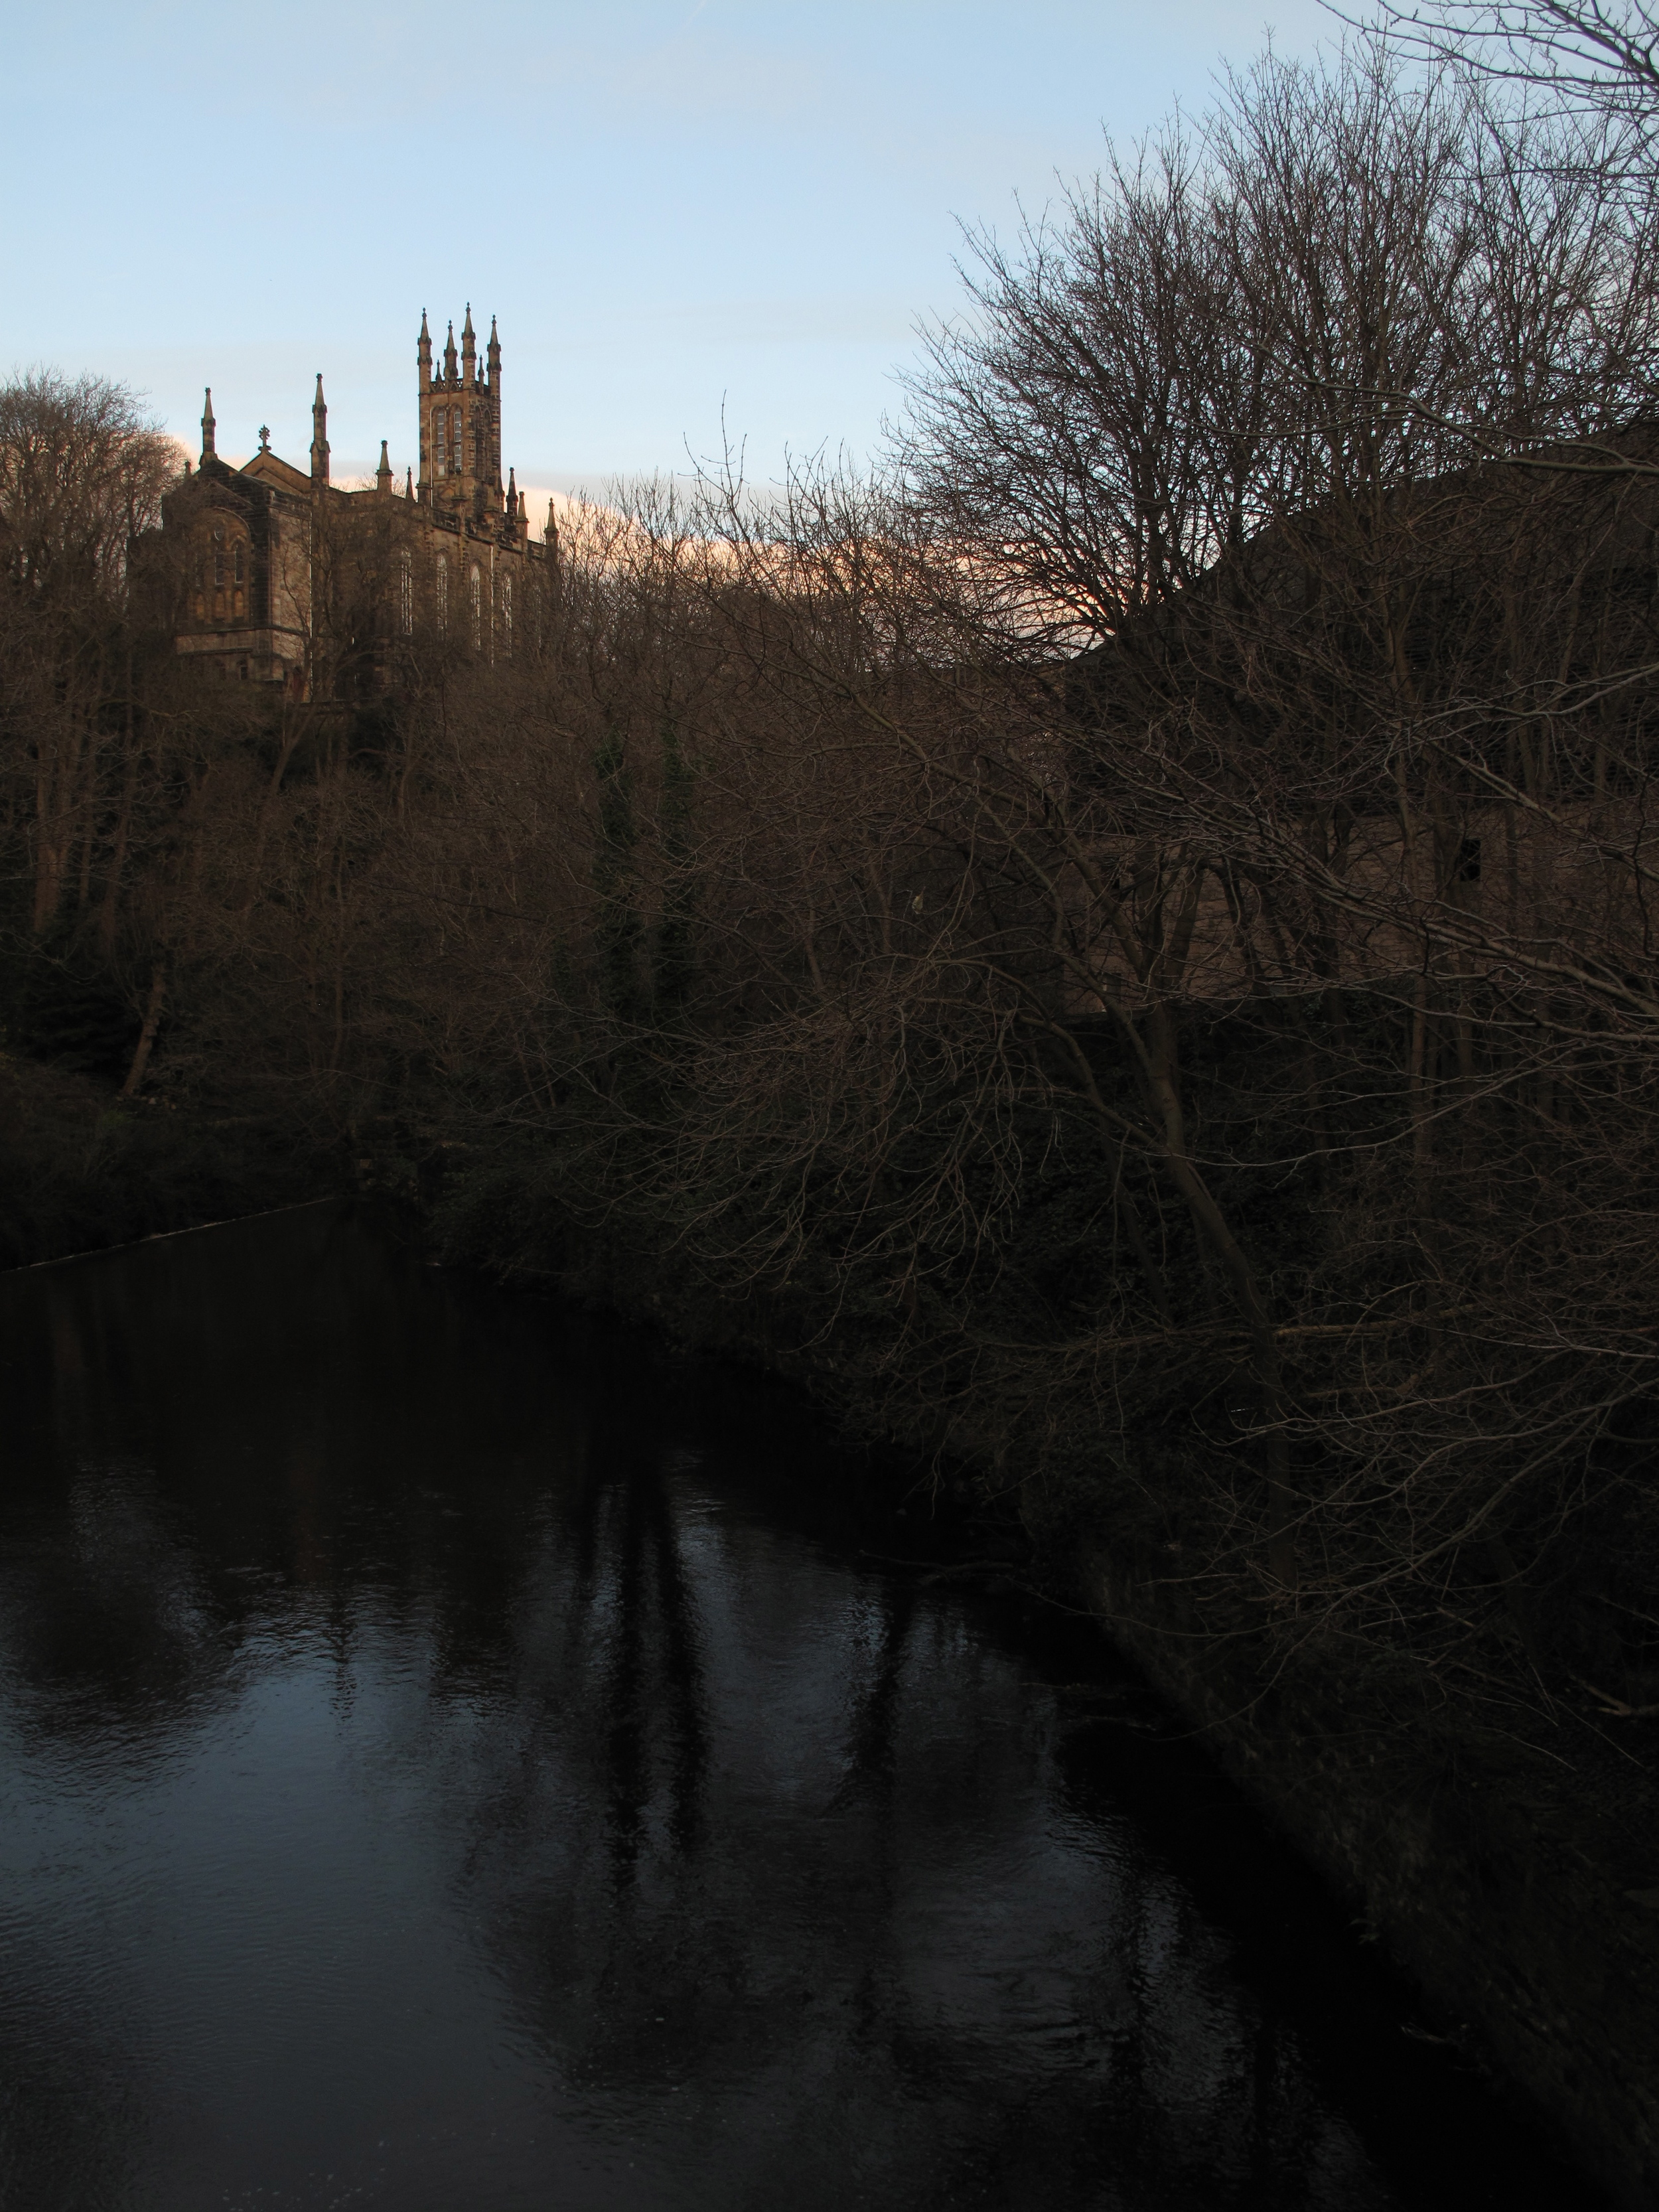 Dean Village and winter trees reflected in the dark Leith river.